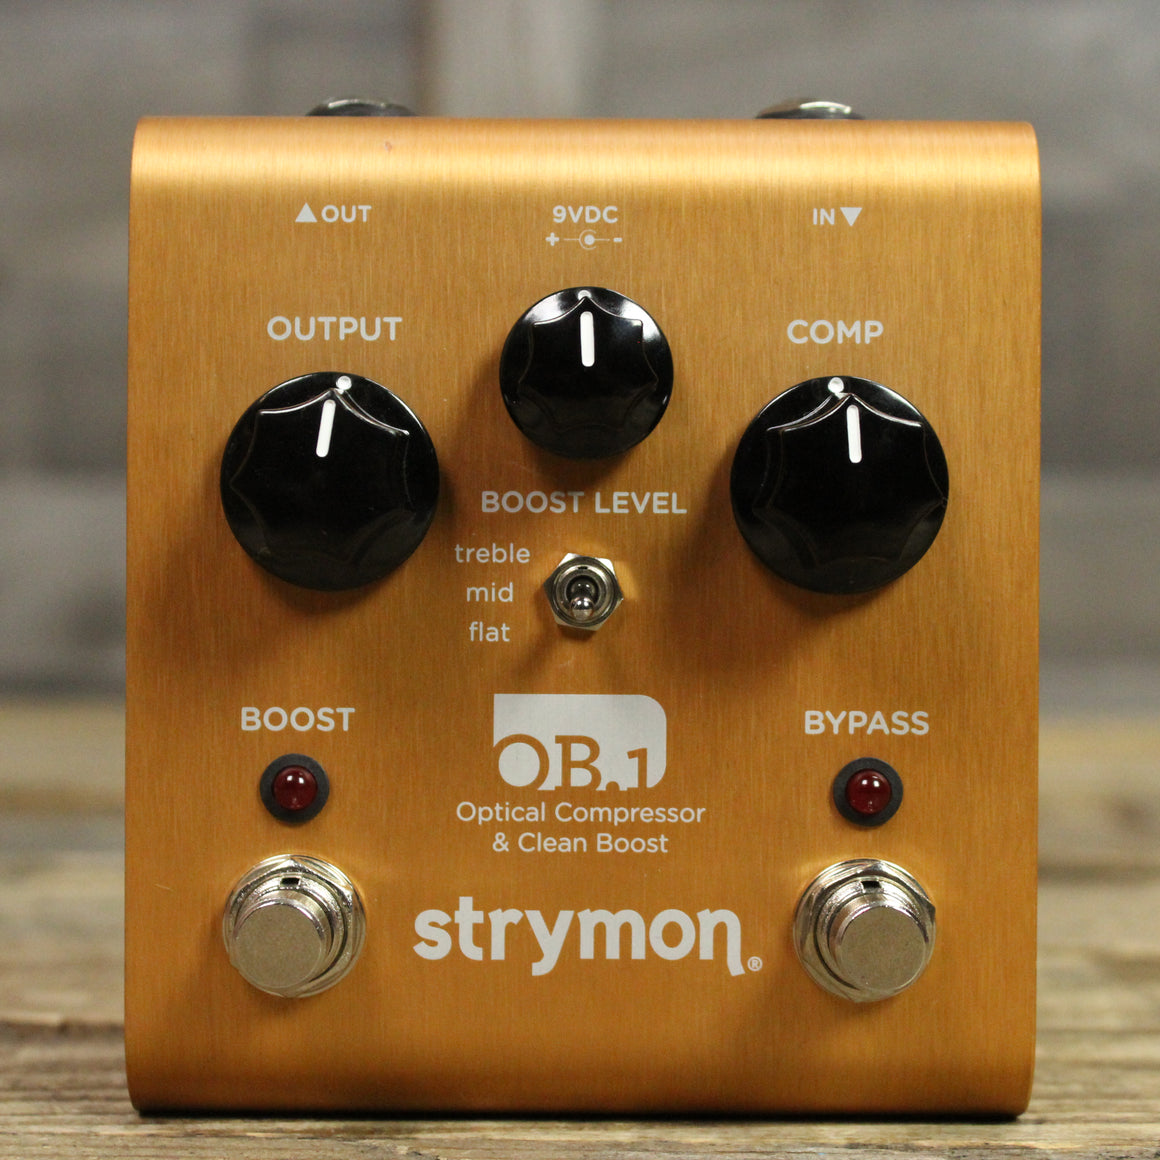 Pre-Owned Strymon OB.1 compressor